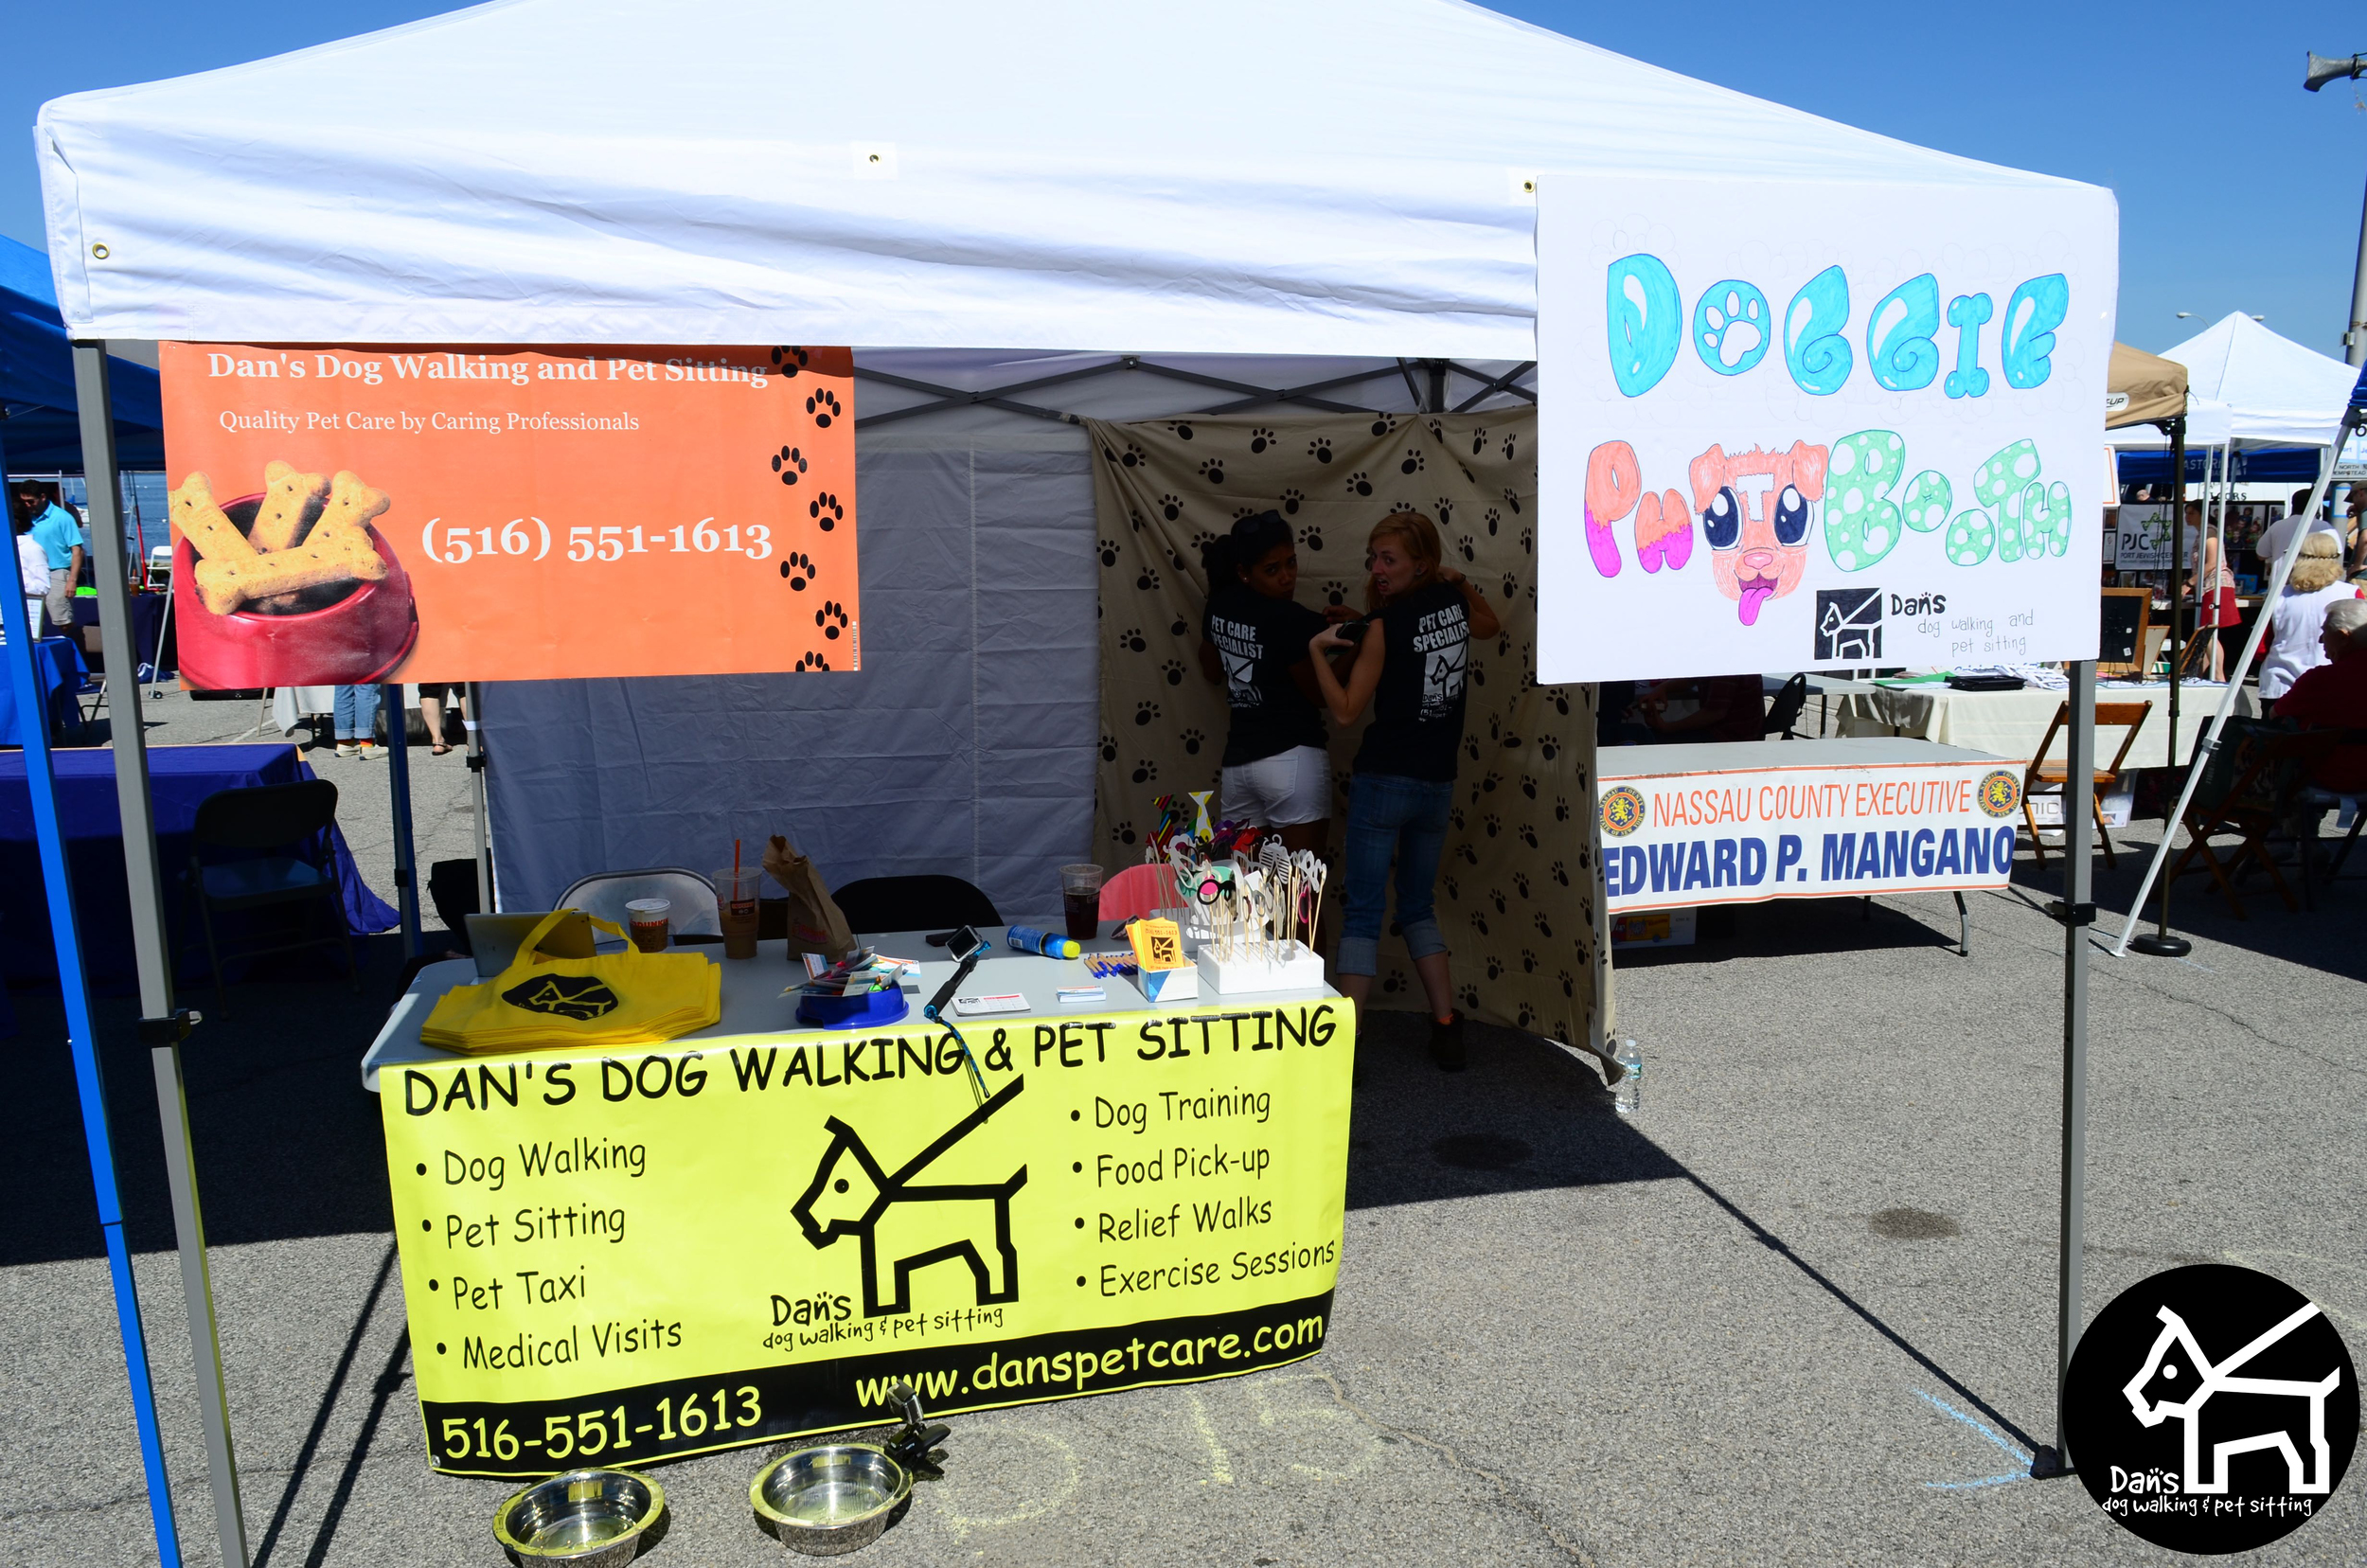 Lara and Ali posing at Dan's Dog Walking and Pet Sitting Doggie Photo Booth at Harbor Fest 2015.jpg